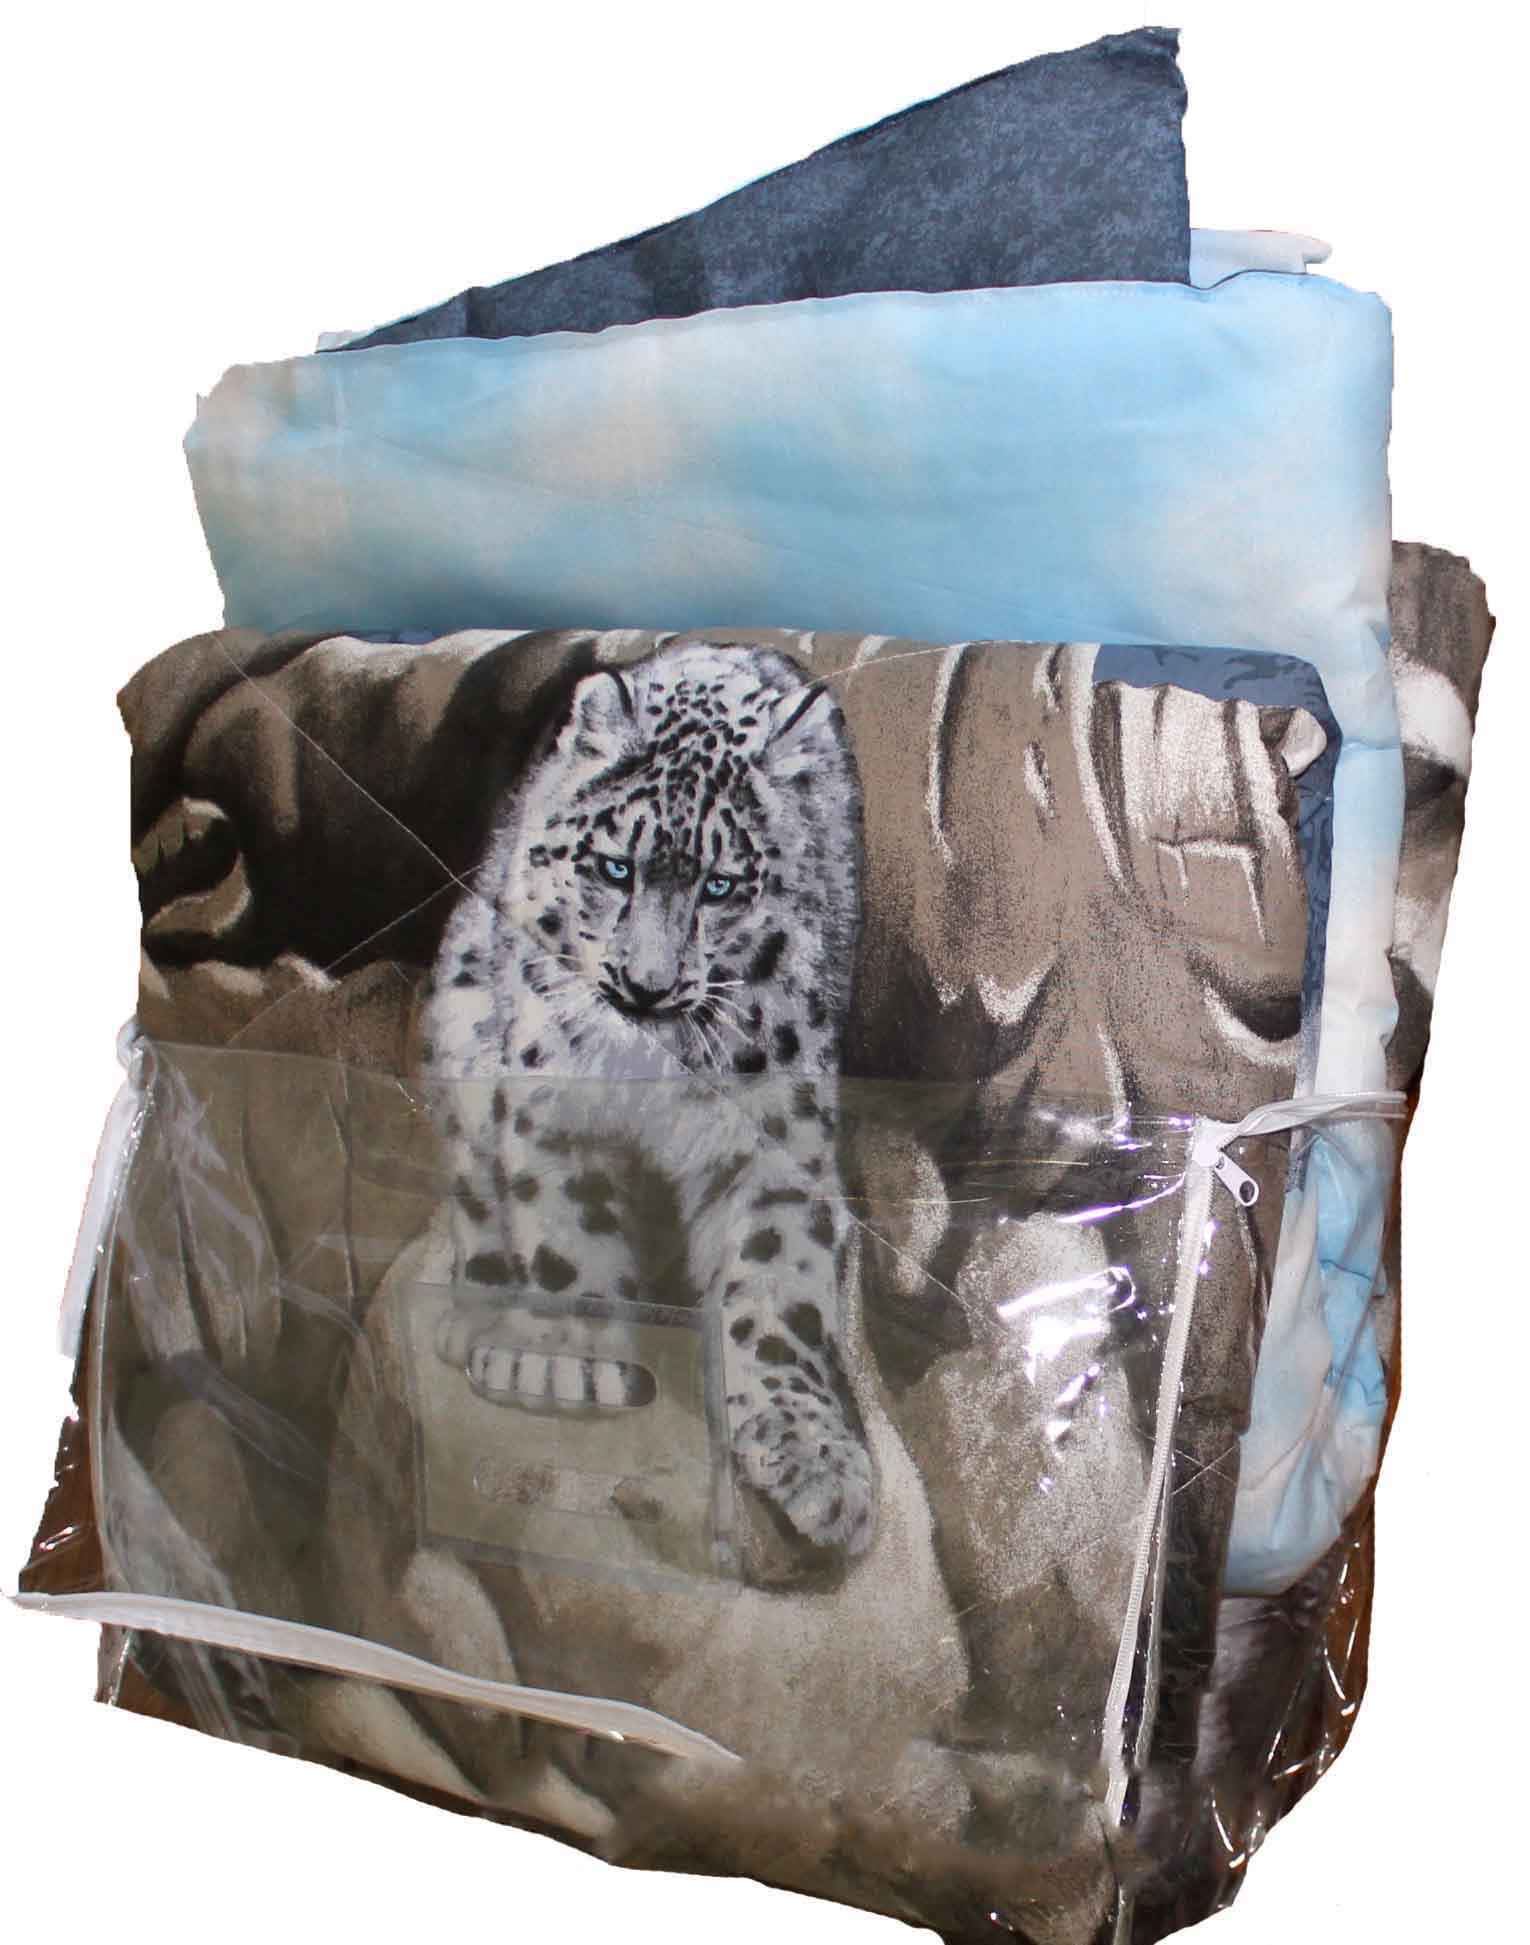 SNOW LEOPARDS Safari CATS Animal Print Comforter Set 66'' x 86'' (6pc TWIN SIZE Bed In A Bag Set)